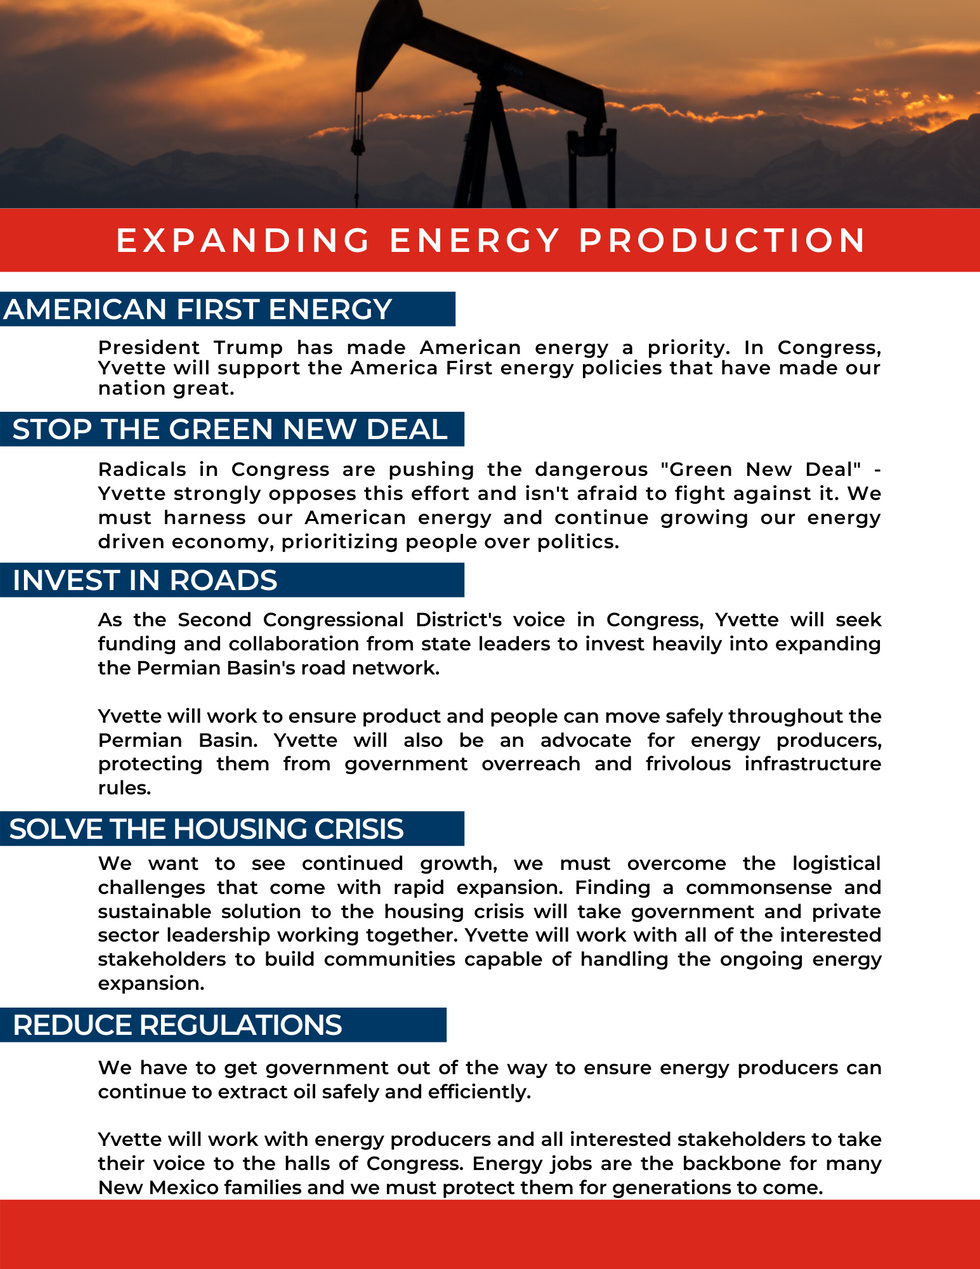 Expanding Energy Production